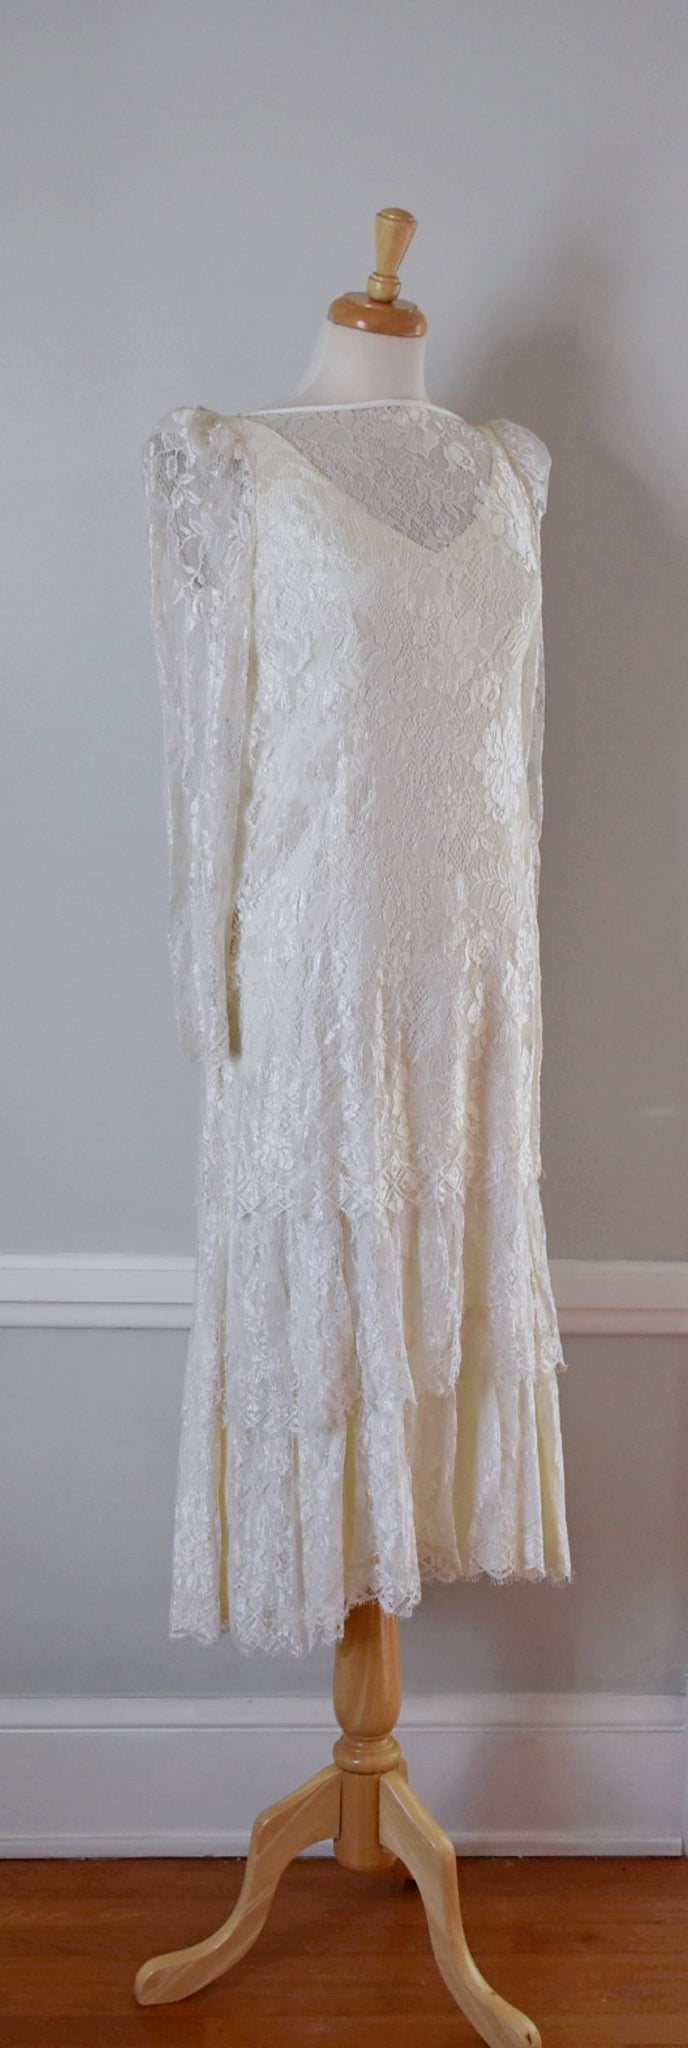 80s Lace Tiered Wedding Dress